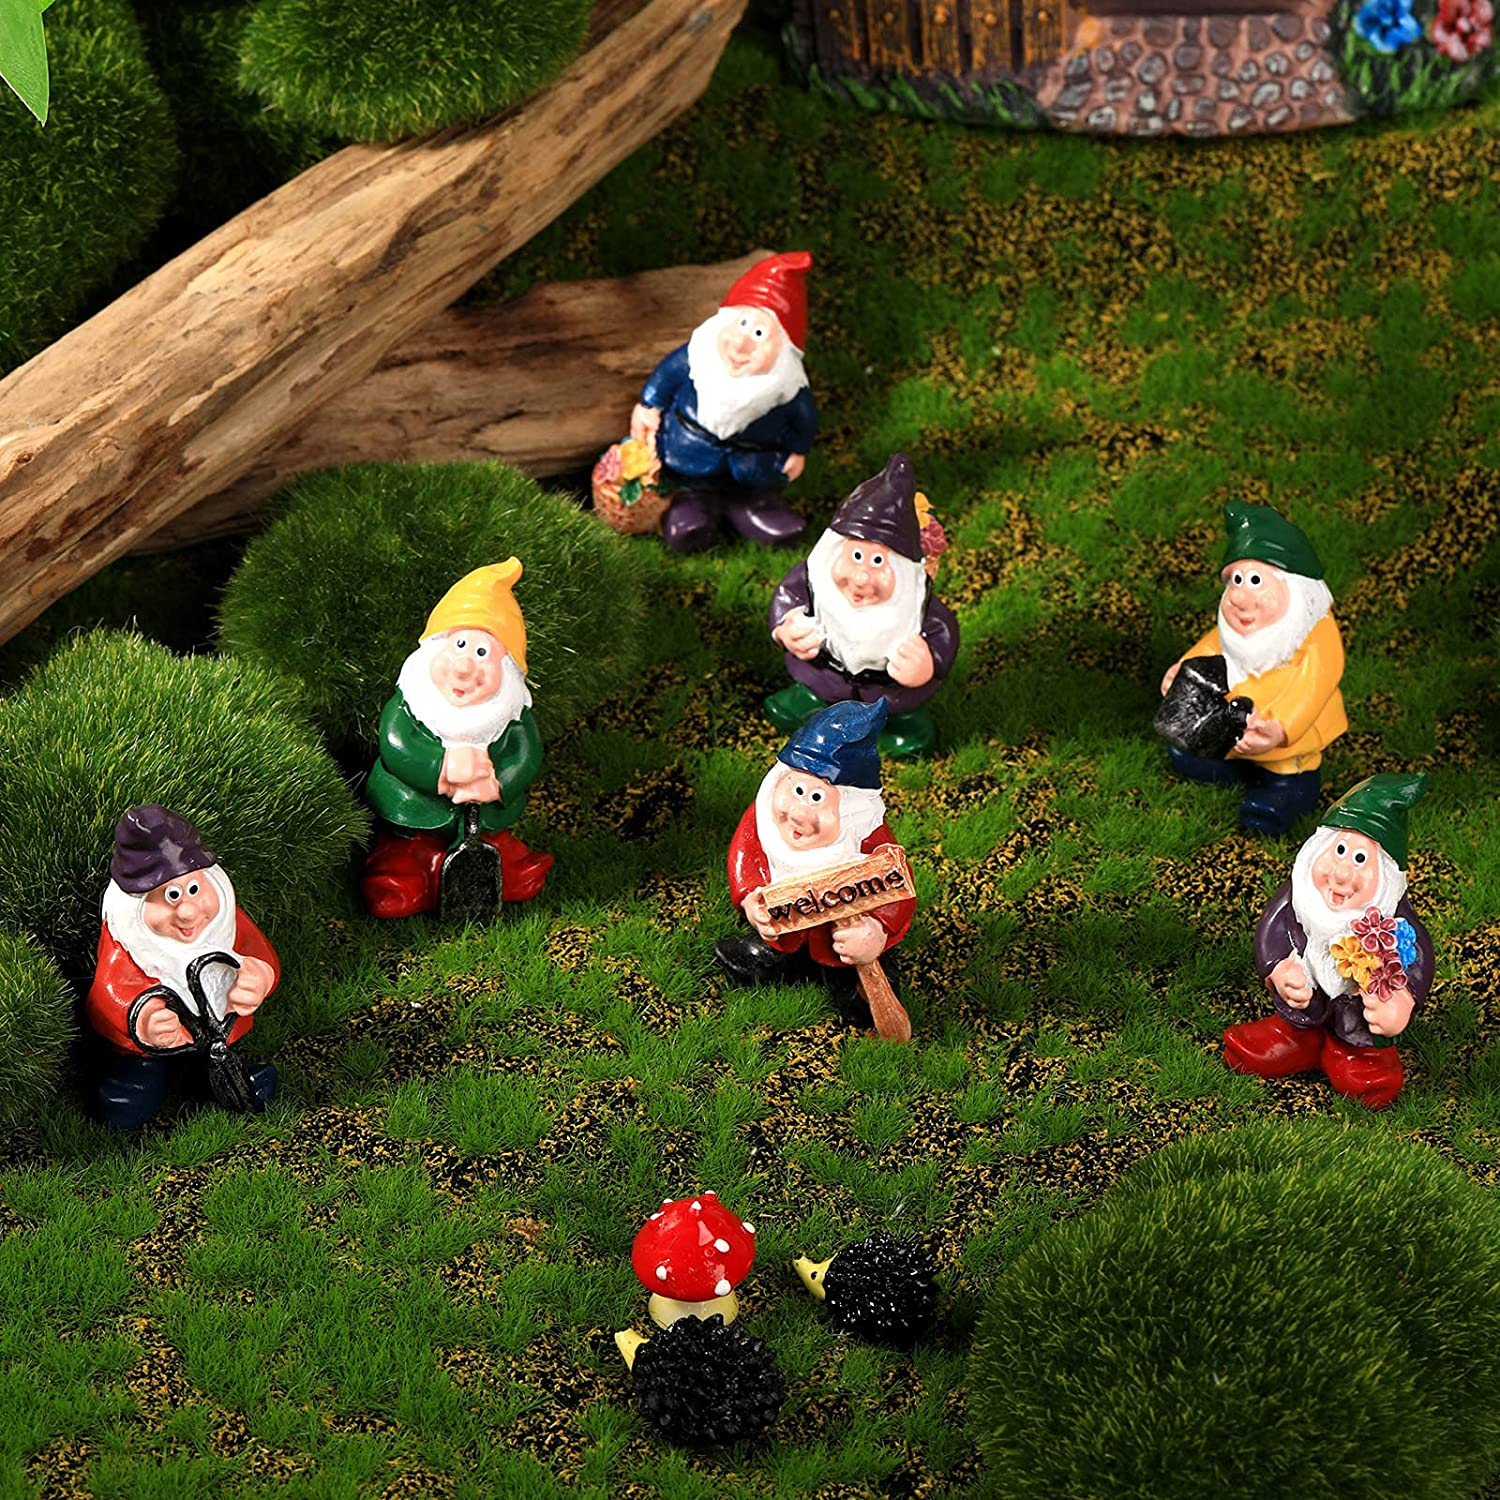 7 Pieces Gnomes Fairy Resin Statues Mini Garden Statues Decoration Gnome Tale Statue with 2 Hedgehog Statues and 1 Mushroom Decor for Holiday Festival Decoration, Relatives Friends Kids